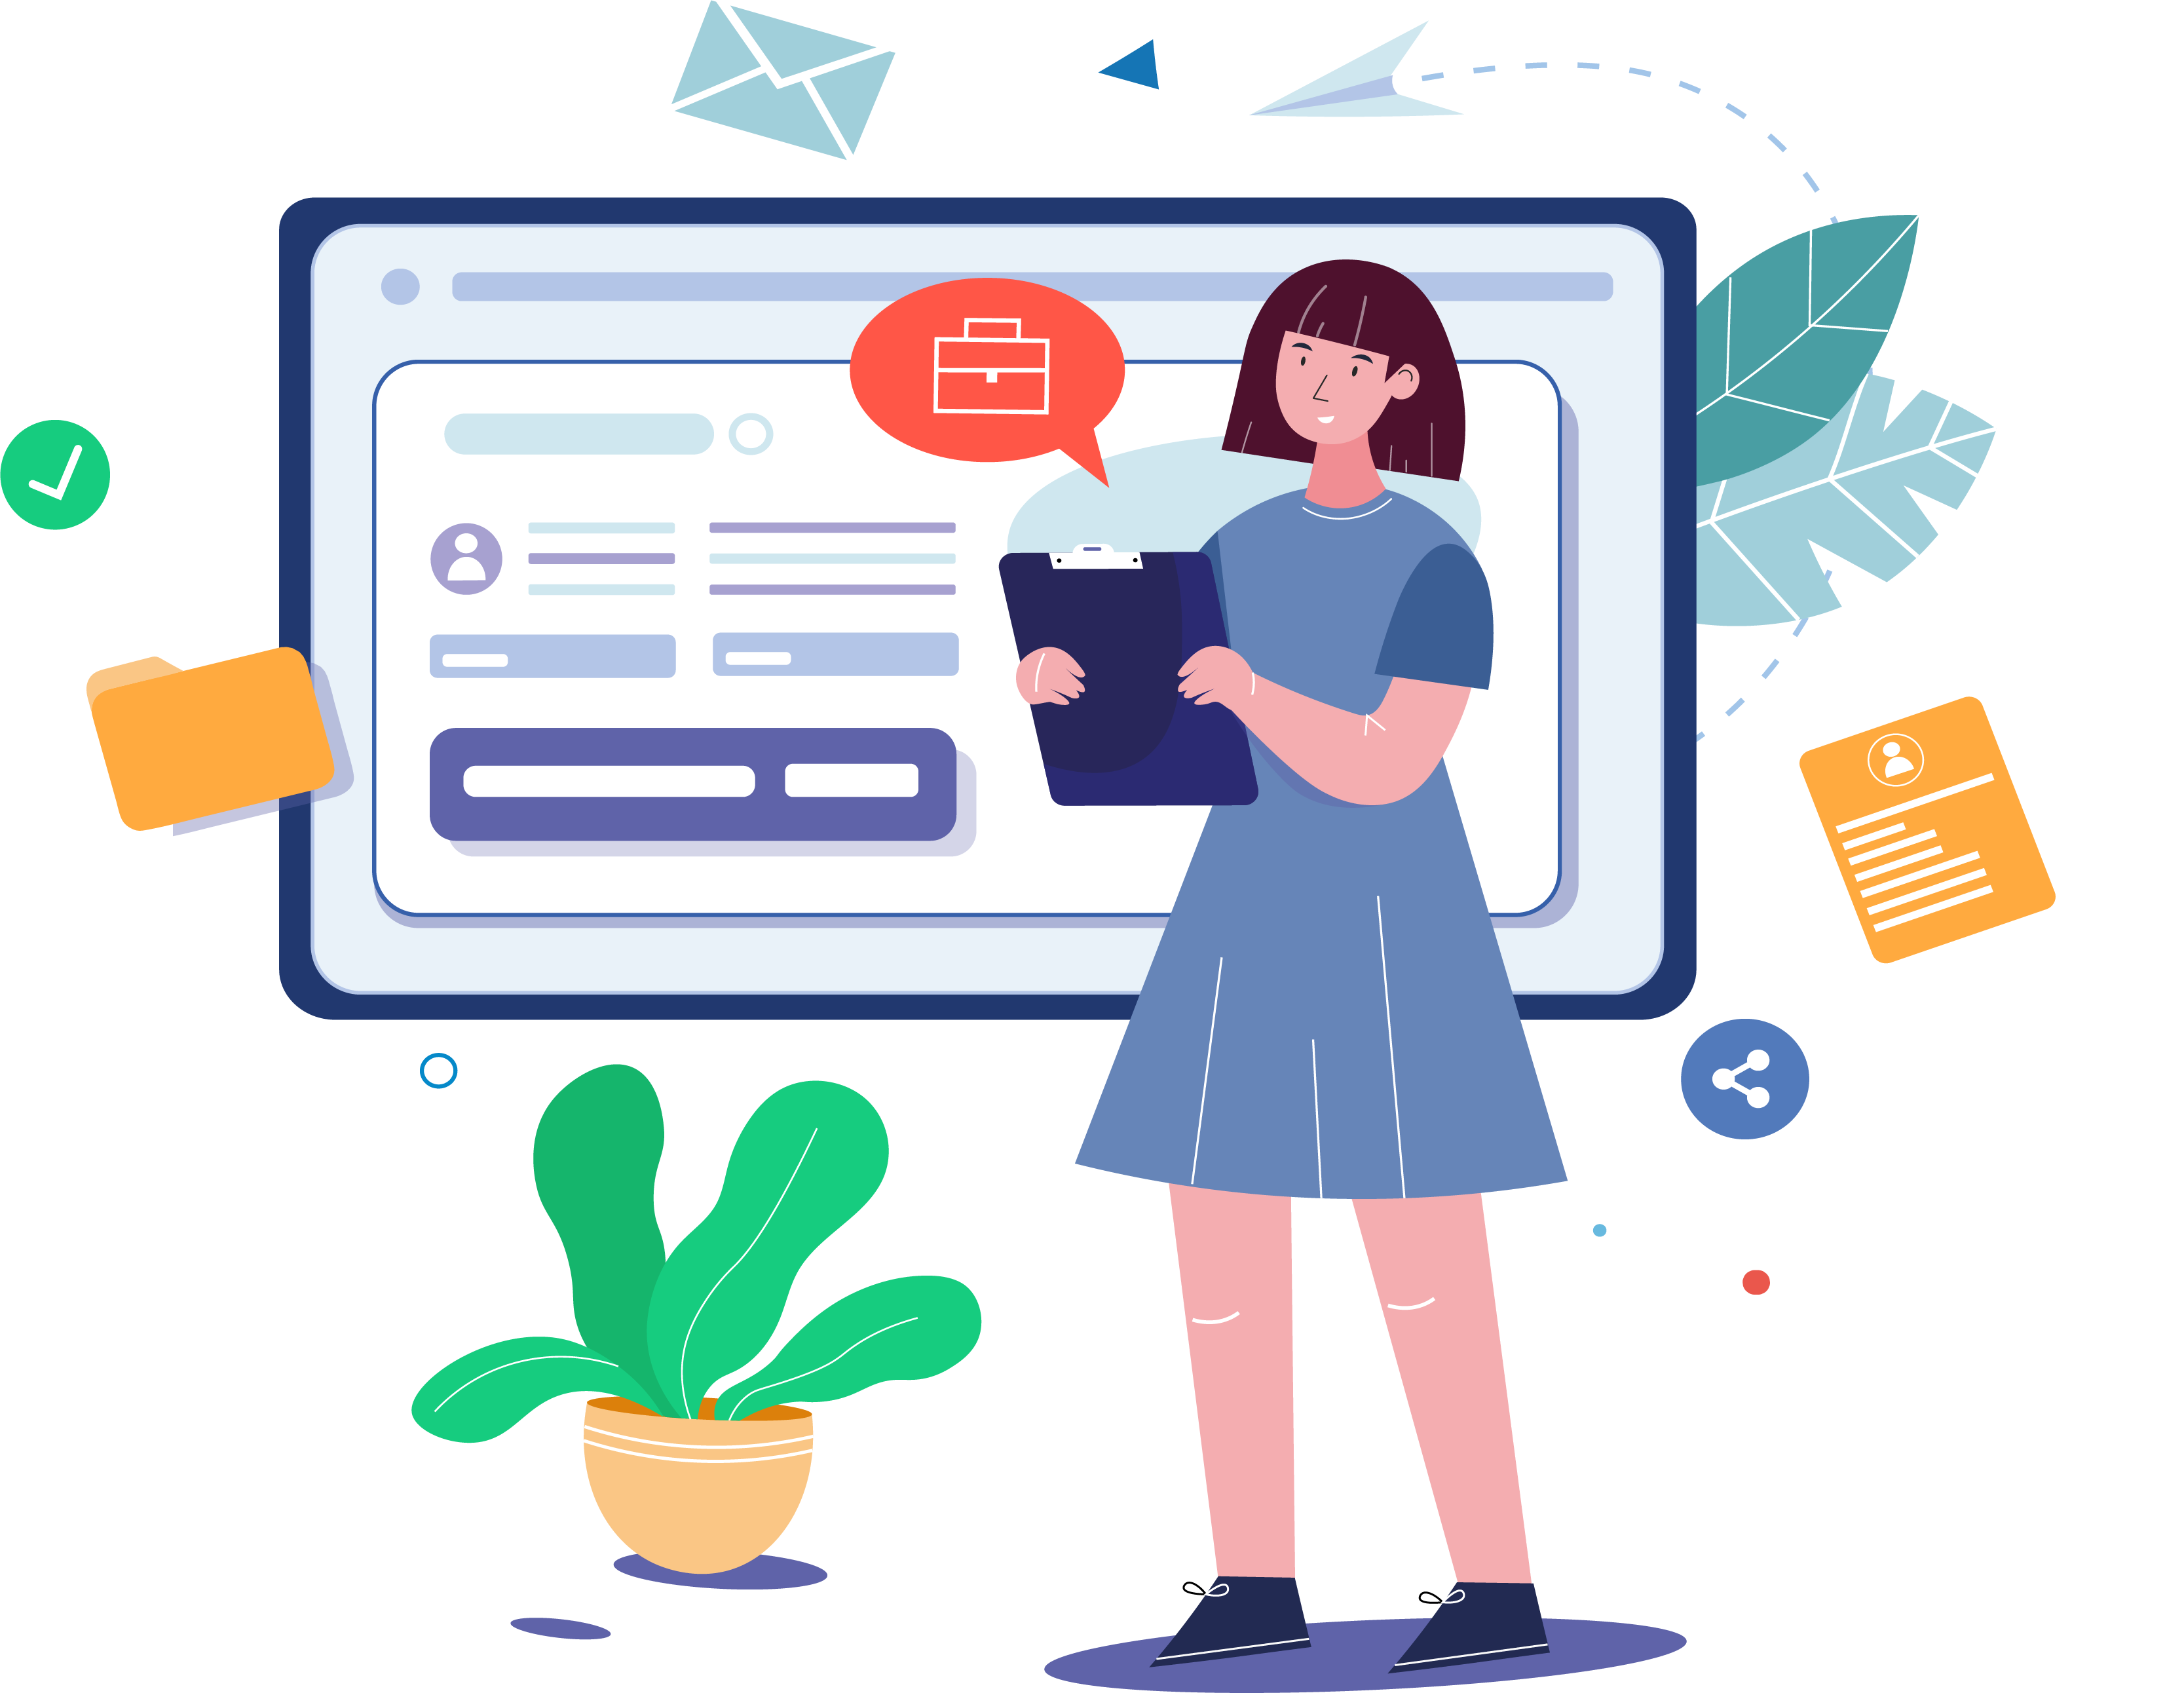 An illustration with a person applying for a job online